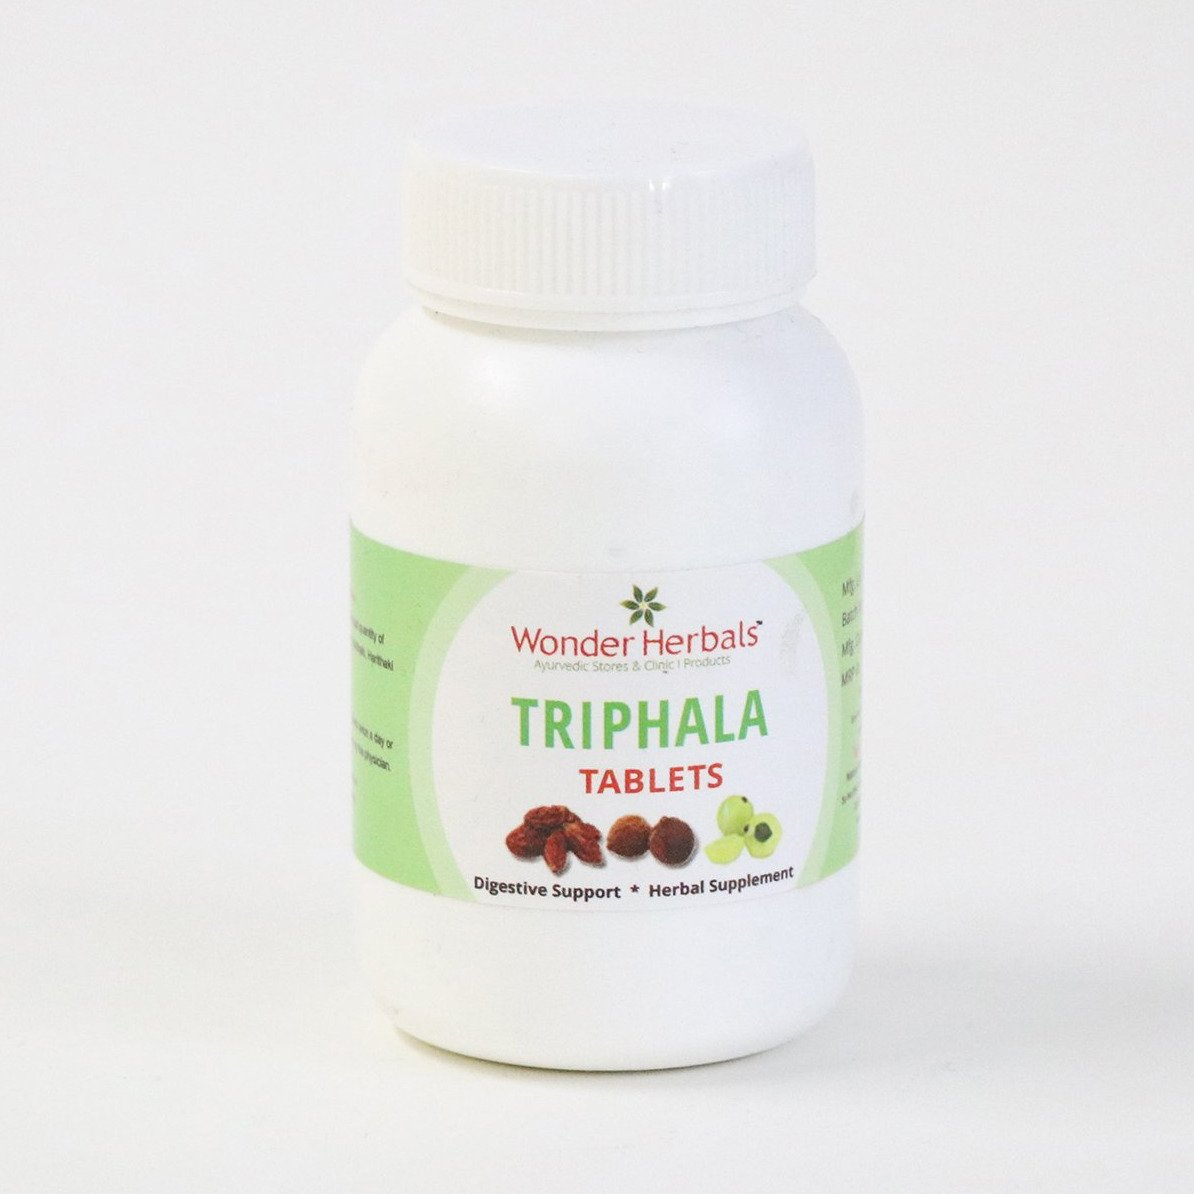 Triphala Tablets - Wonderherbals